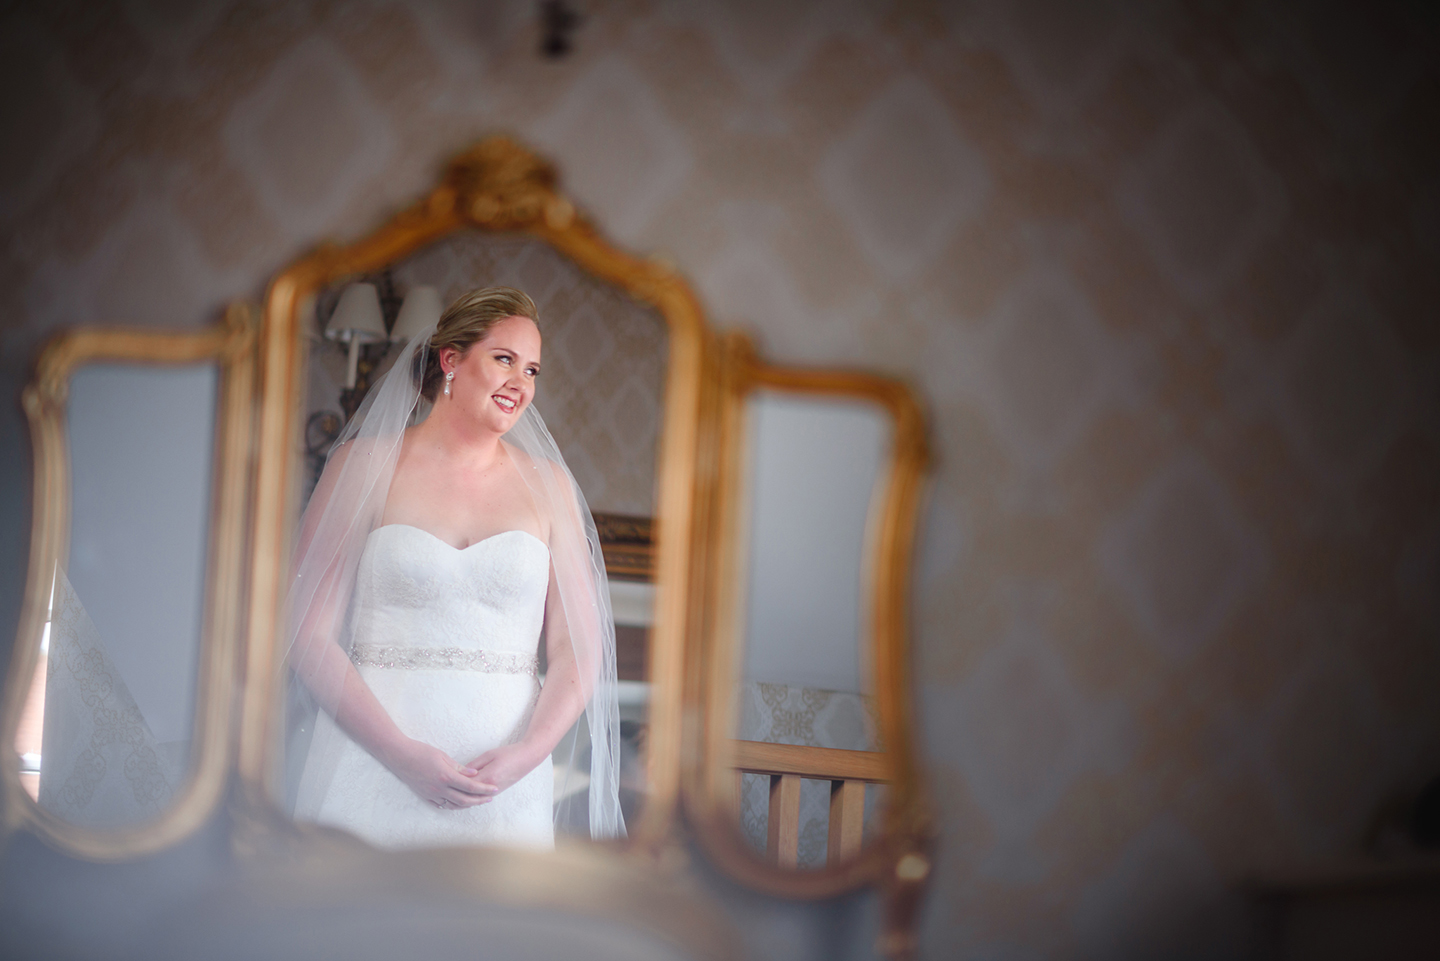 The bride got ready with her bridesmaids in the Bridal Boudoir